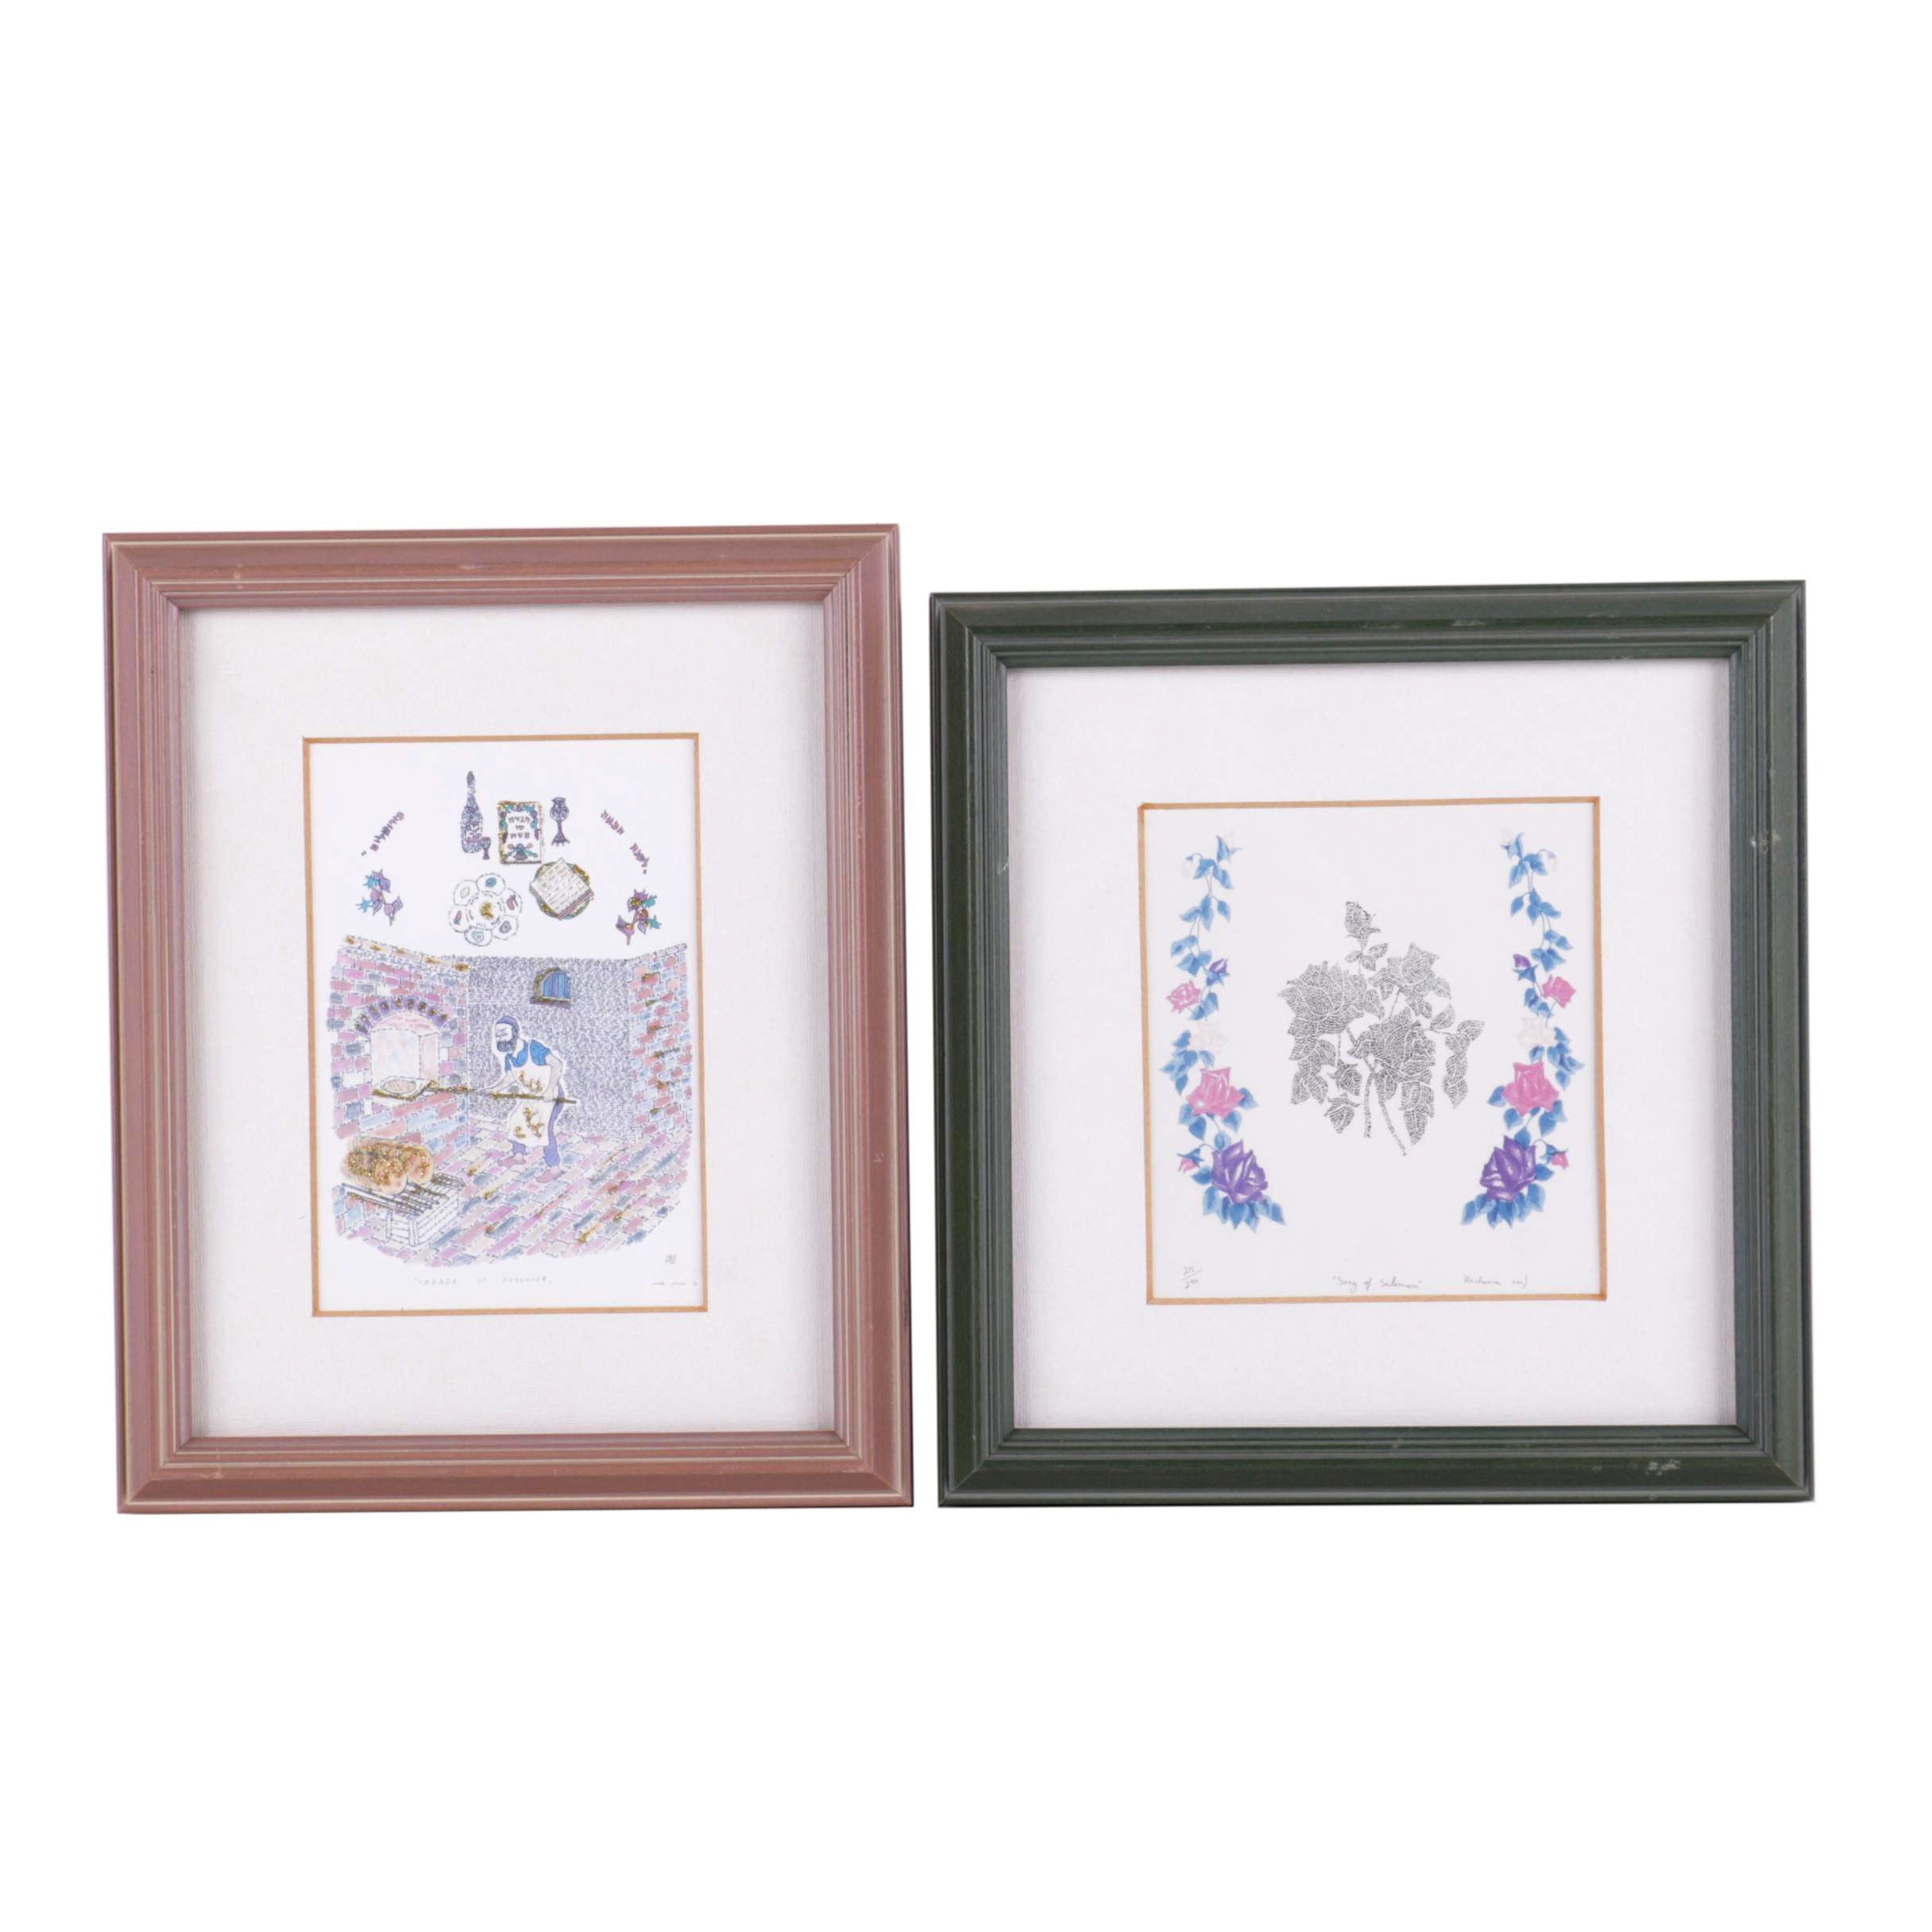 Two Offset Lithographs of Judaic Theme